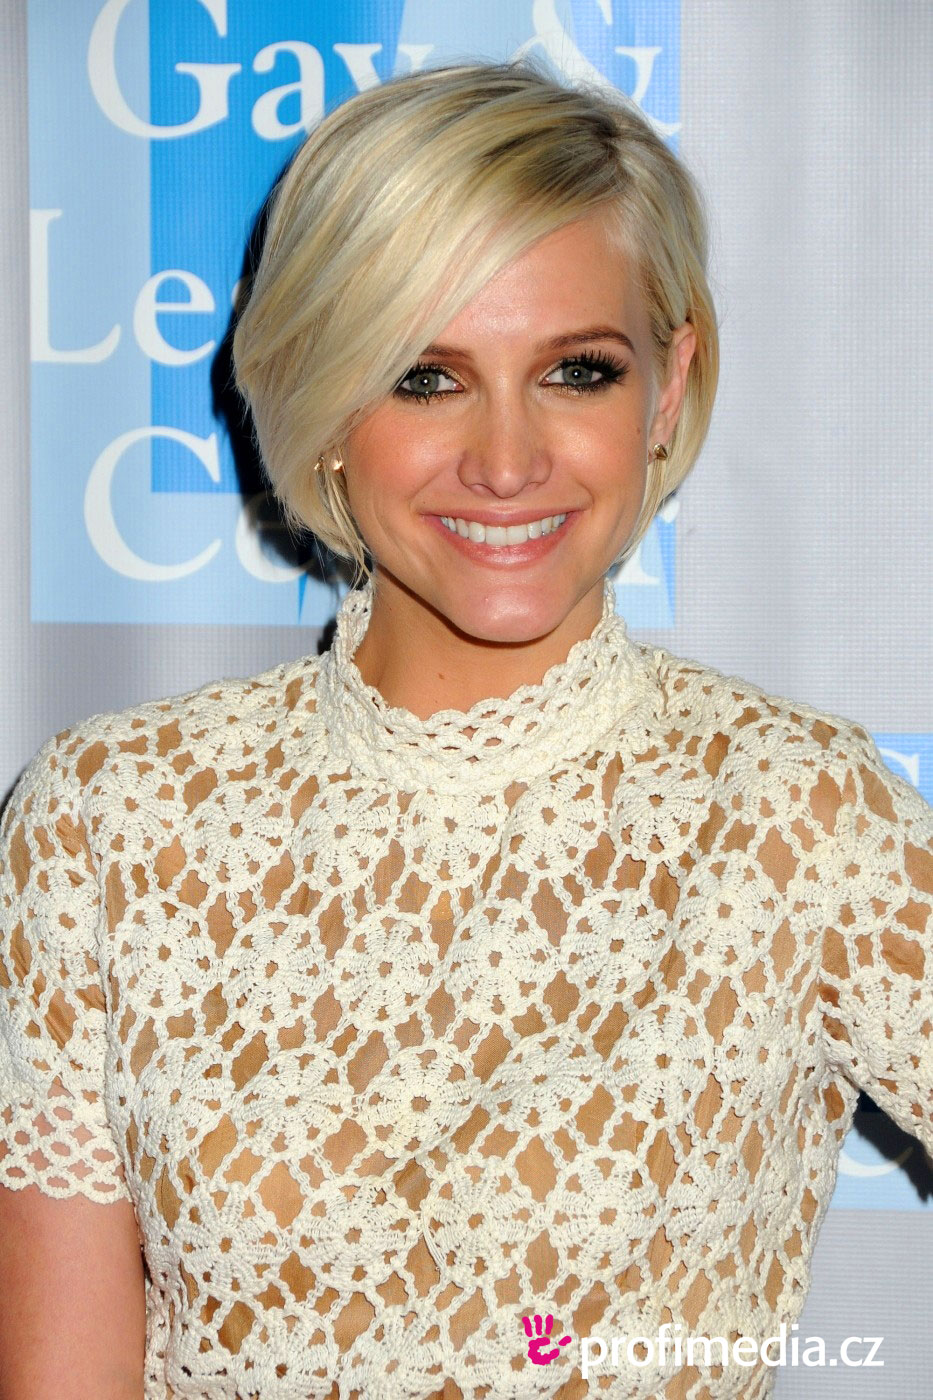 Ashlee simpson wentz hairstyle easyhairstyler you can try this ashlee simpson wentzs hairstyle with your own photo upload at easyhairstyler urmus Gallery